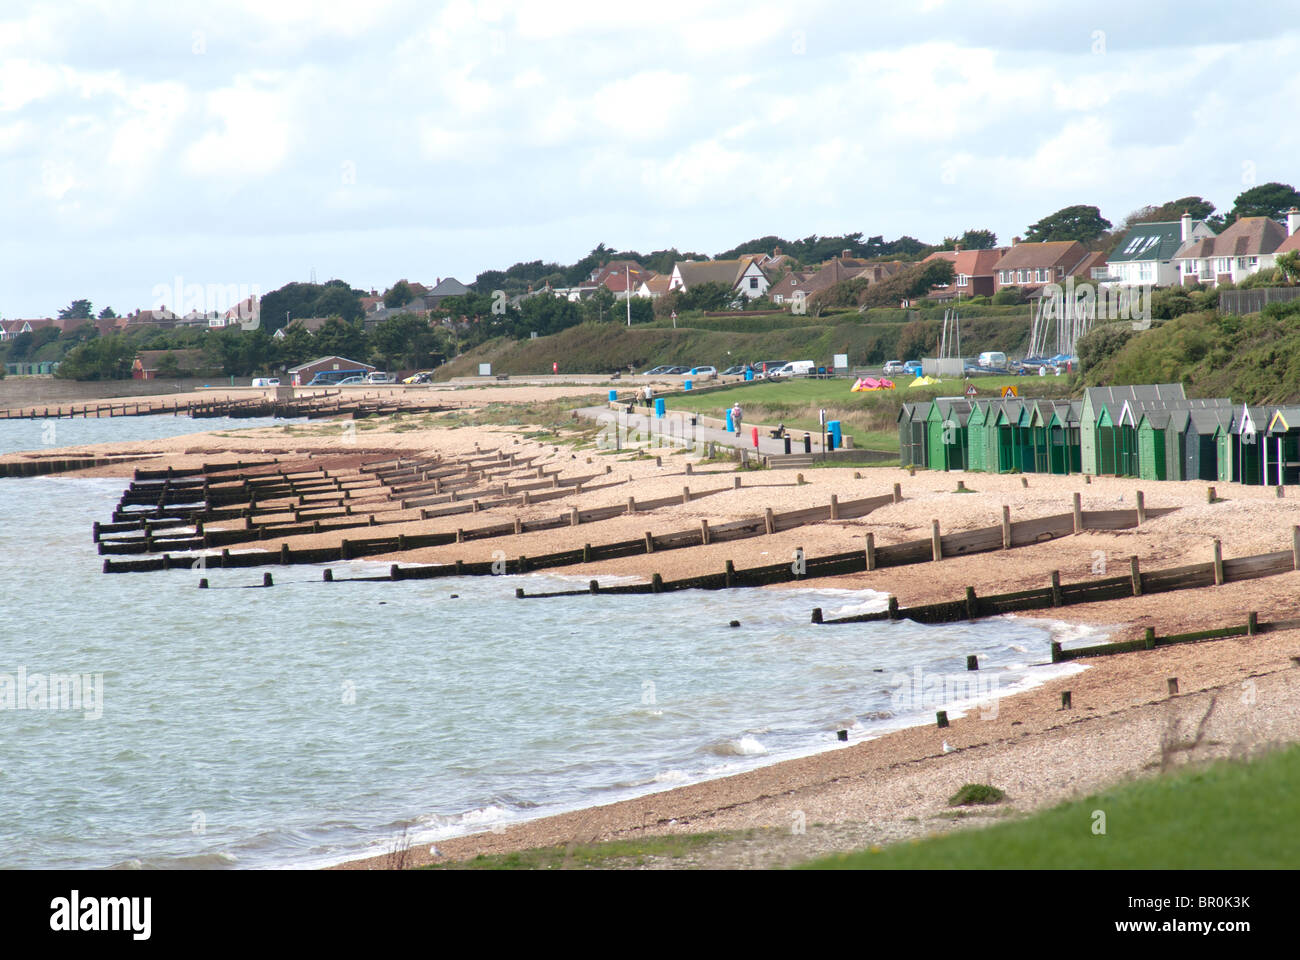 Sea Defence at Lee on Solent - Stock Image